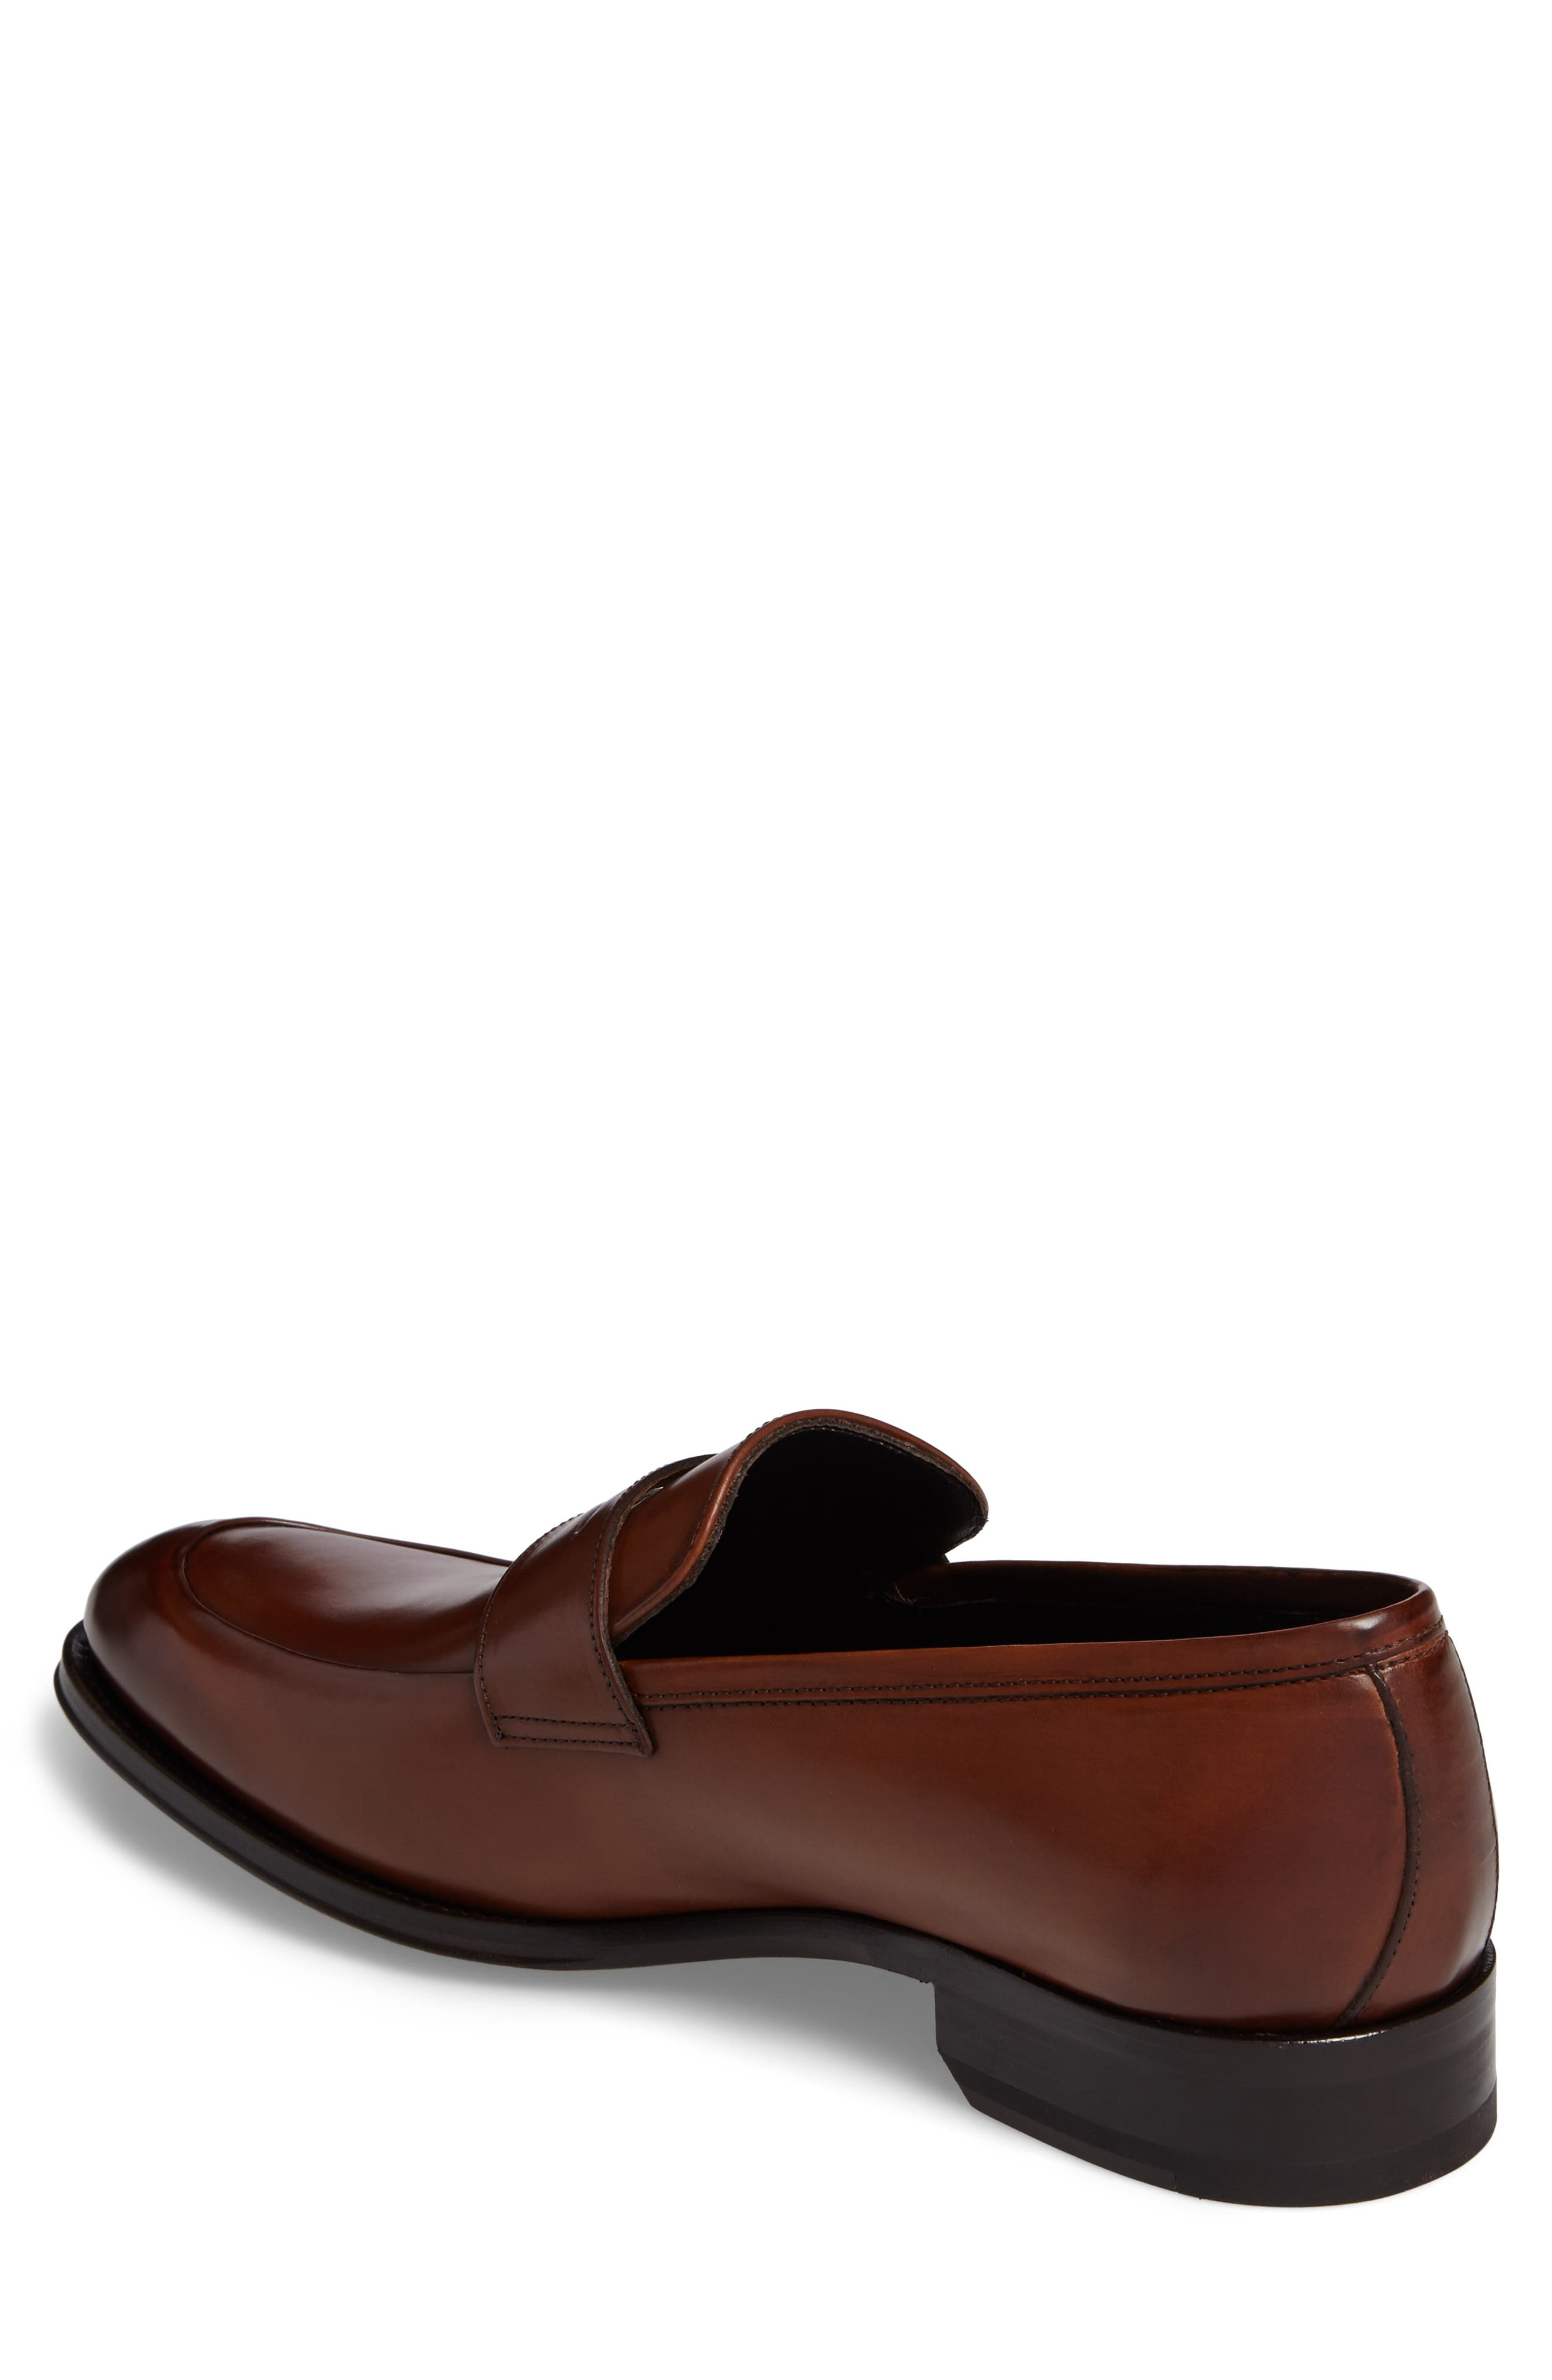 Francis Penny Loafer,                             Alternate thumbnail 2, color,                             Brown Leather